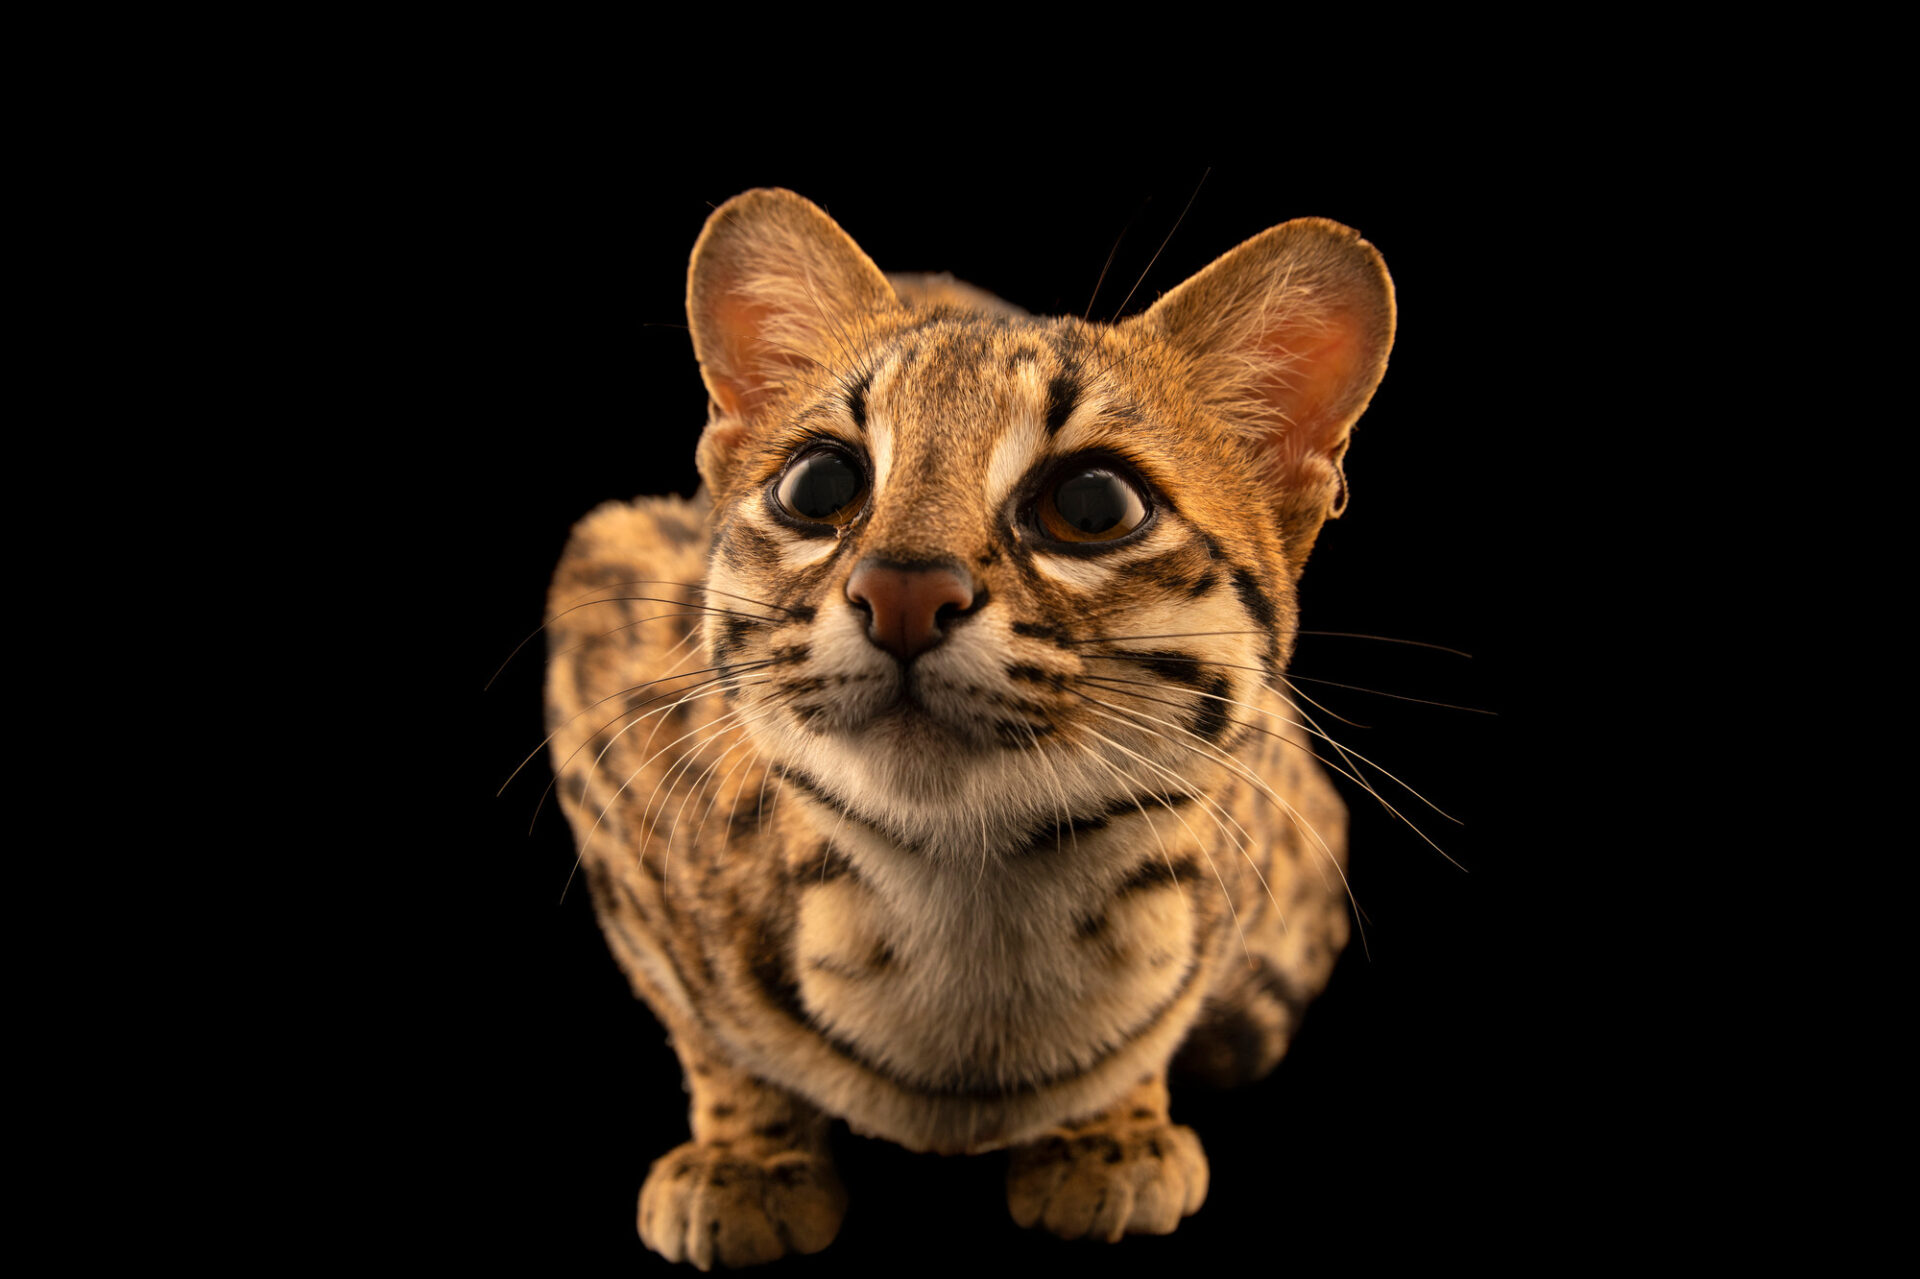 Photo: A female Southern oncilla or tiger cat (Leopardus guttulus) at Fundacao Jardim Zoologico de Brasilia.